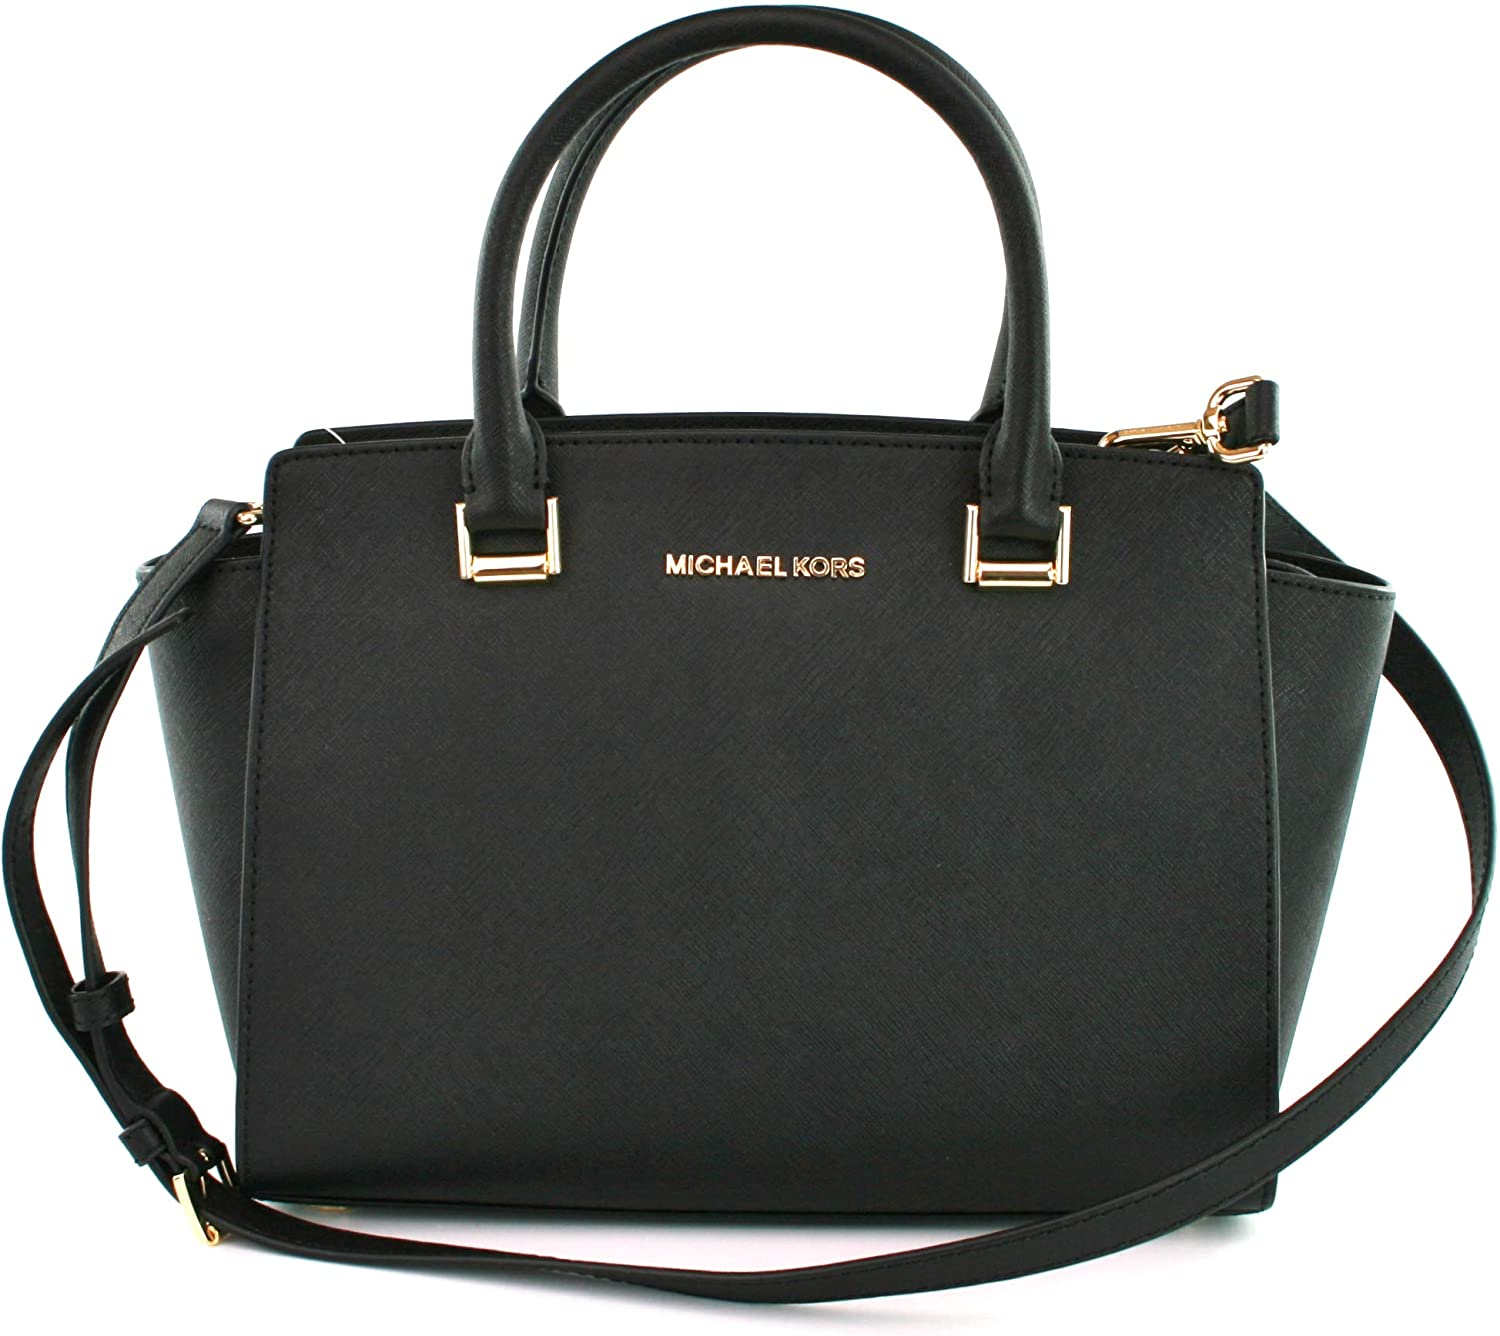 : Michael Kors Selma Black Saffiano Leather Medium